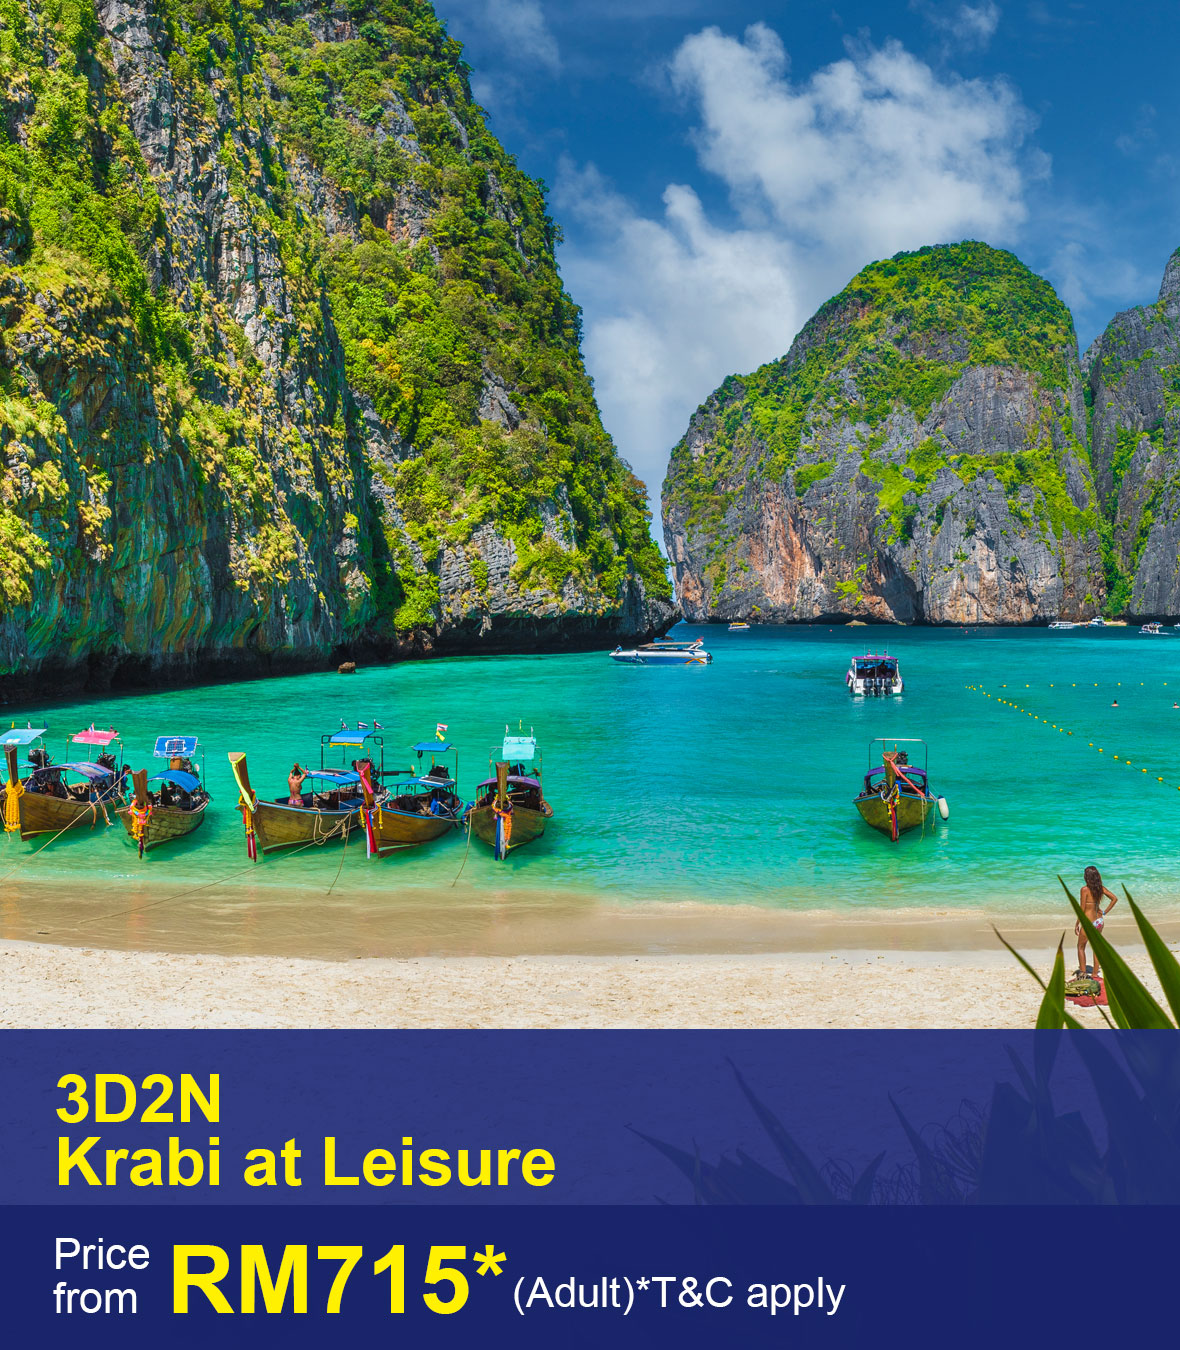 UOB-3D2N Krabi at Leisure